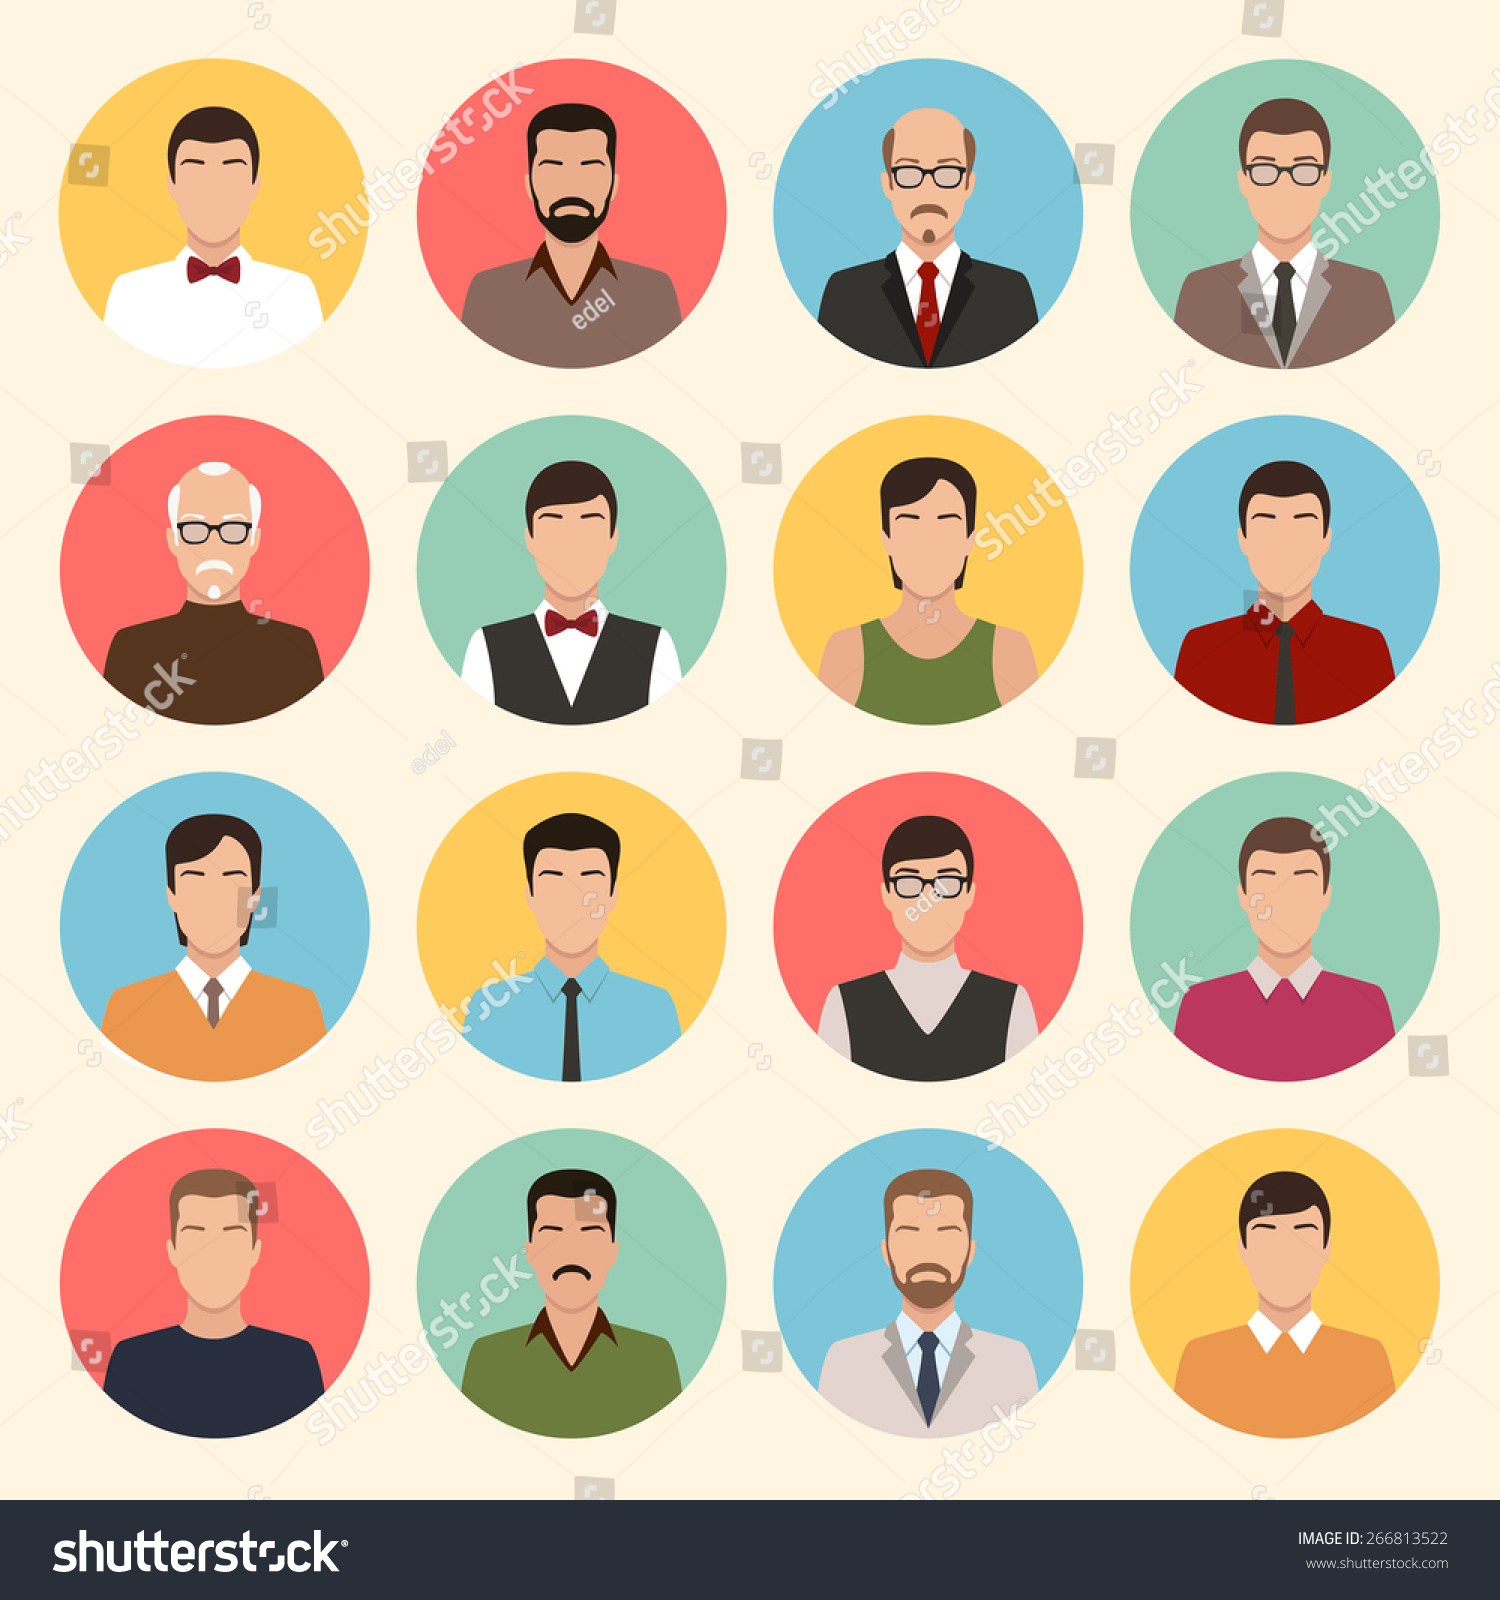 Character Design Icon : Male character faces avatars flat style vector people